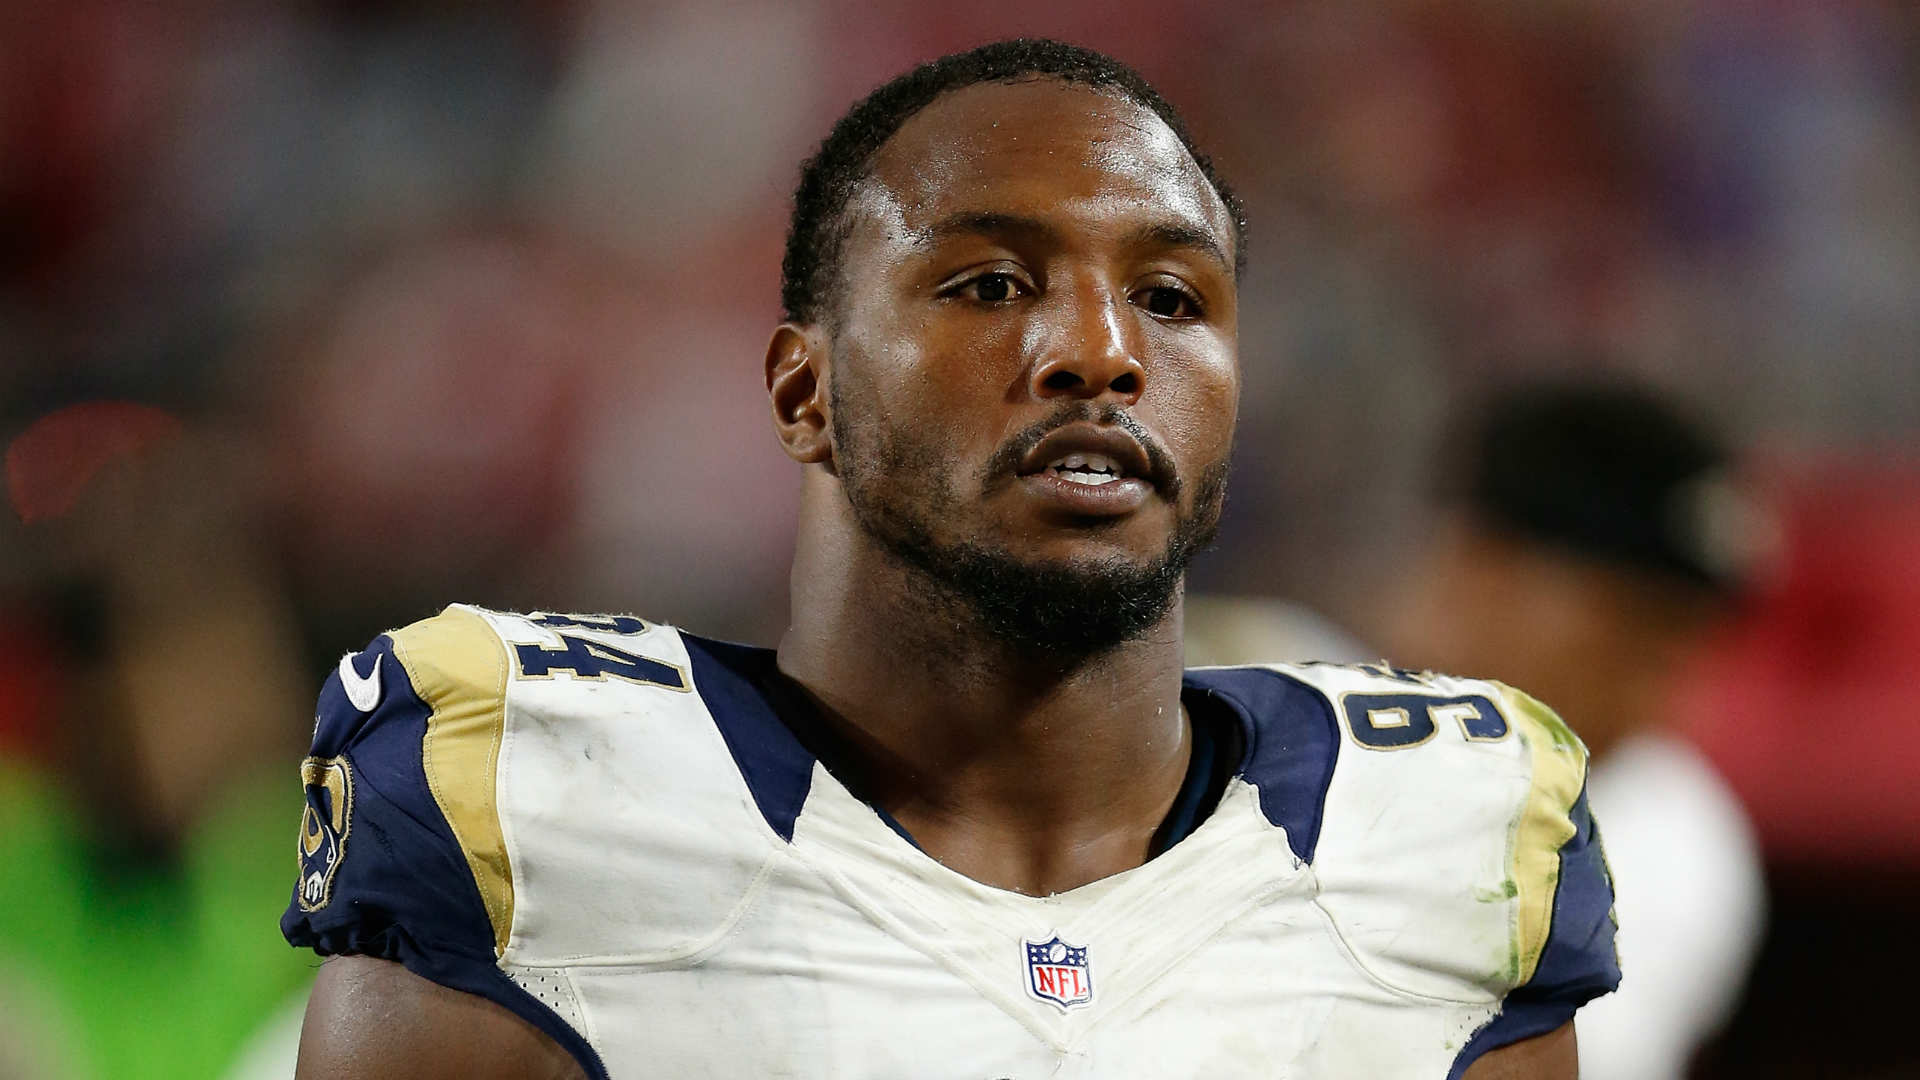 Rams DE Robert Quinn was simply dehydrated when rushed to hospital